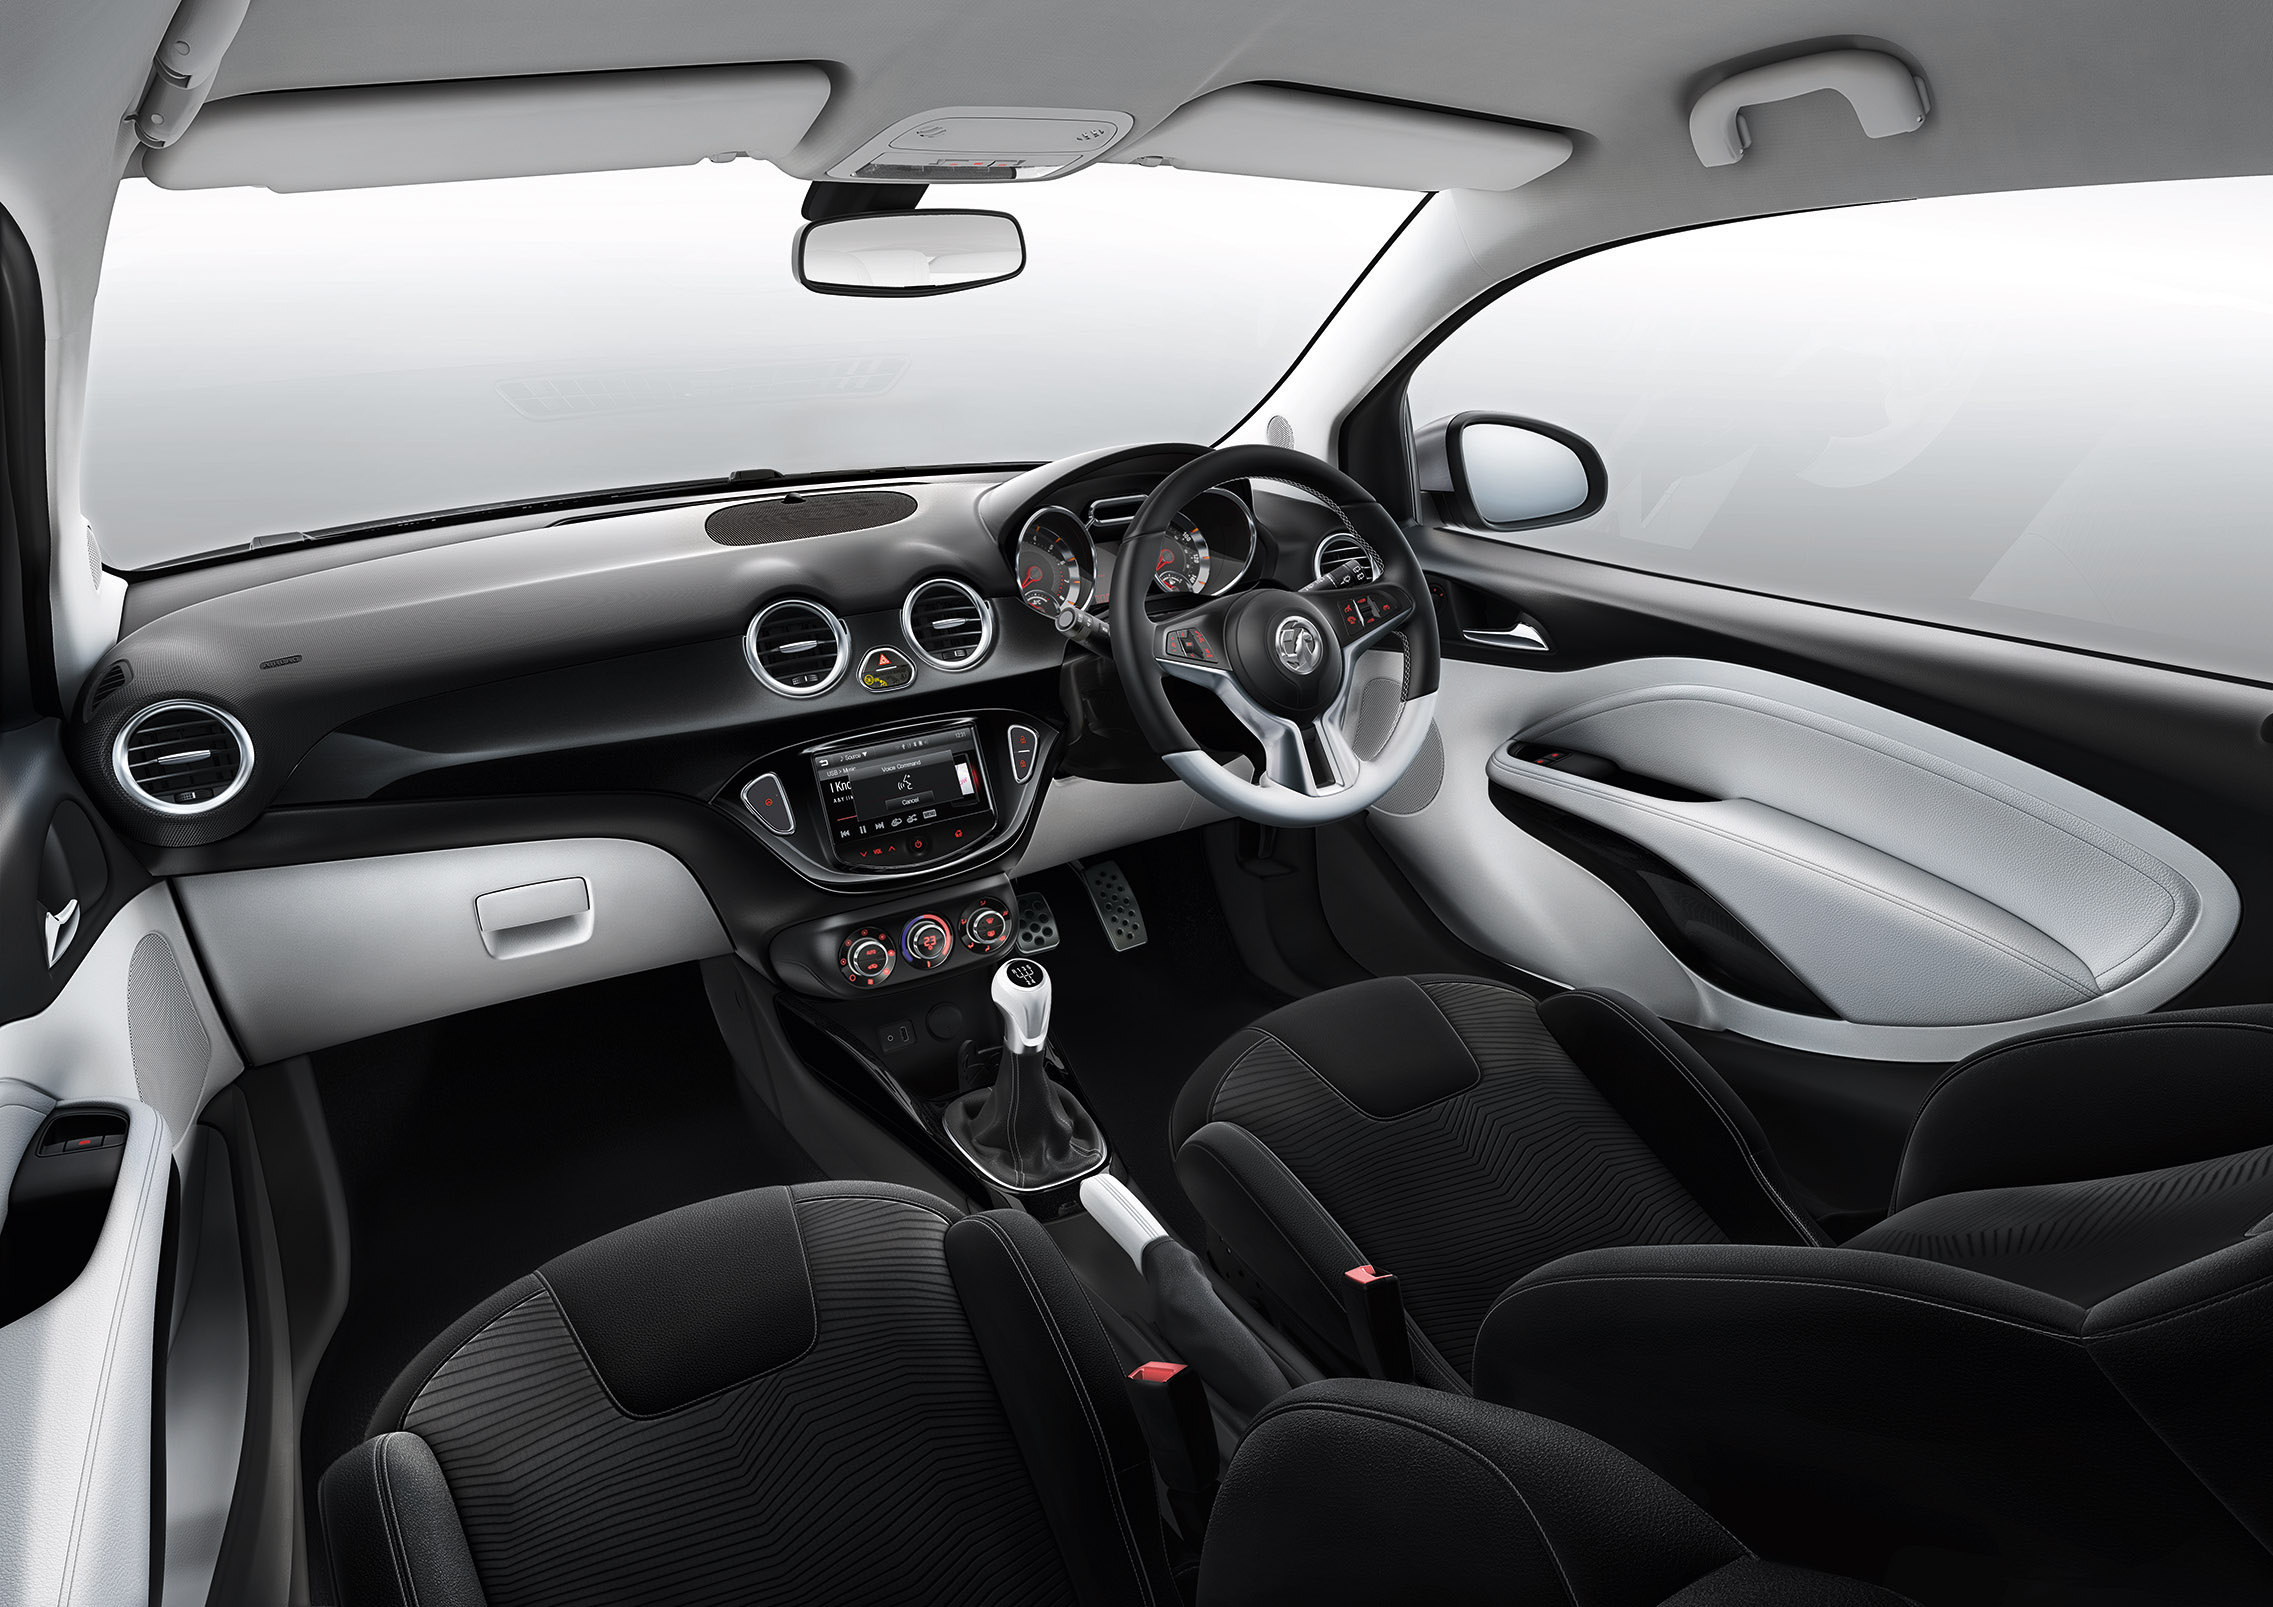 The Limited Vauxhall Adam For Iphone Users